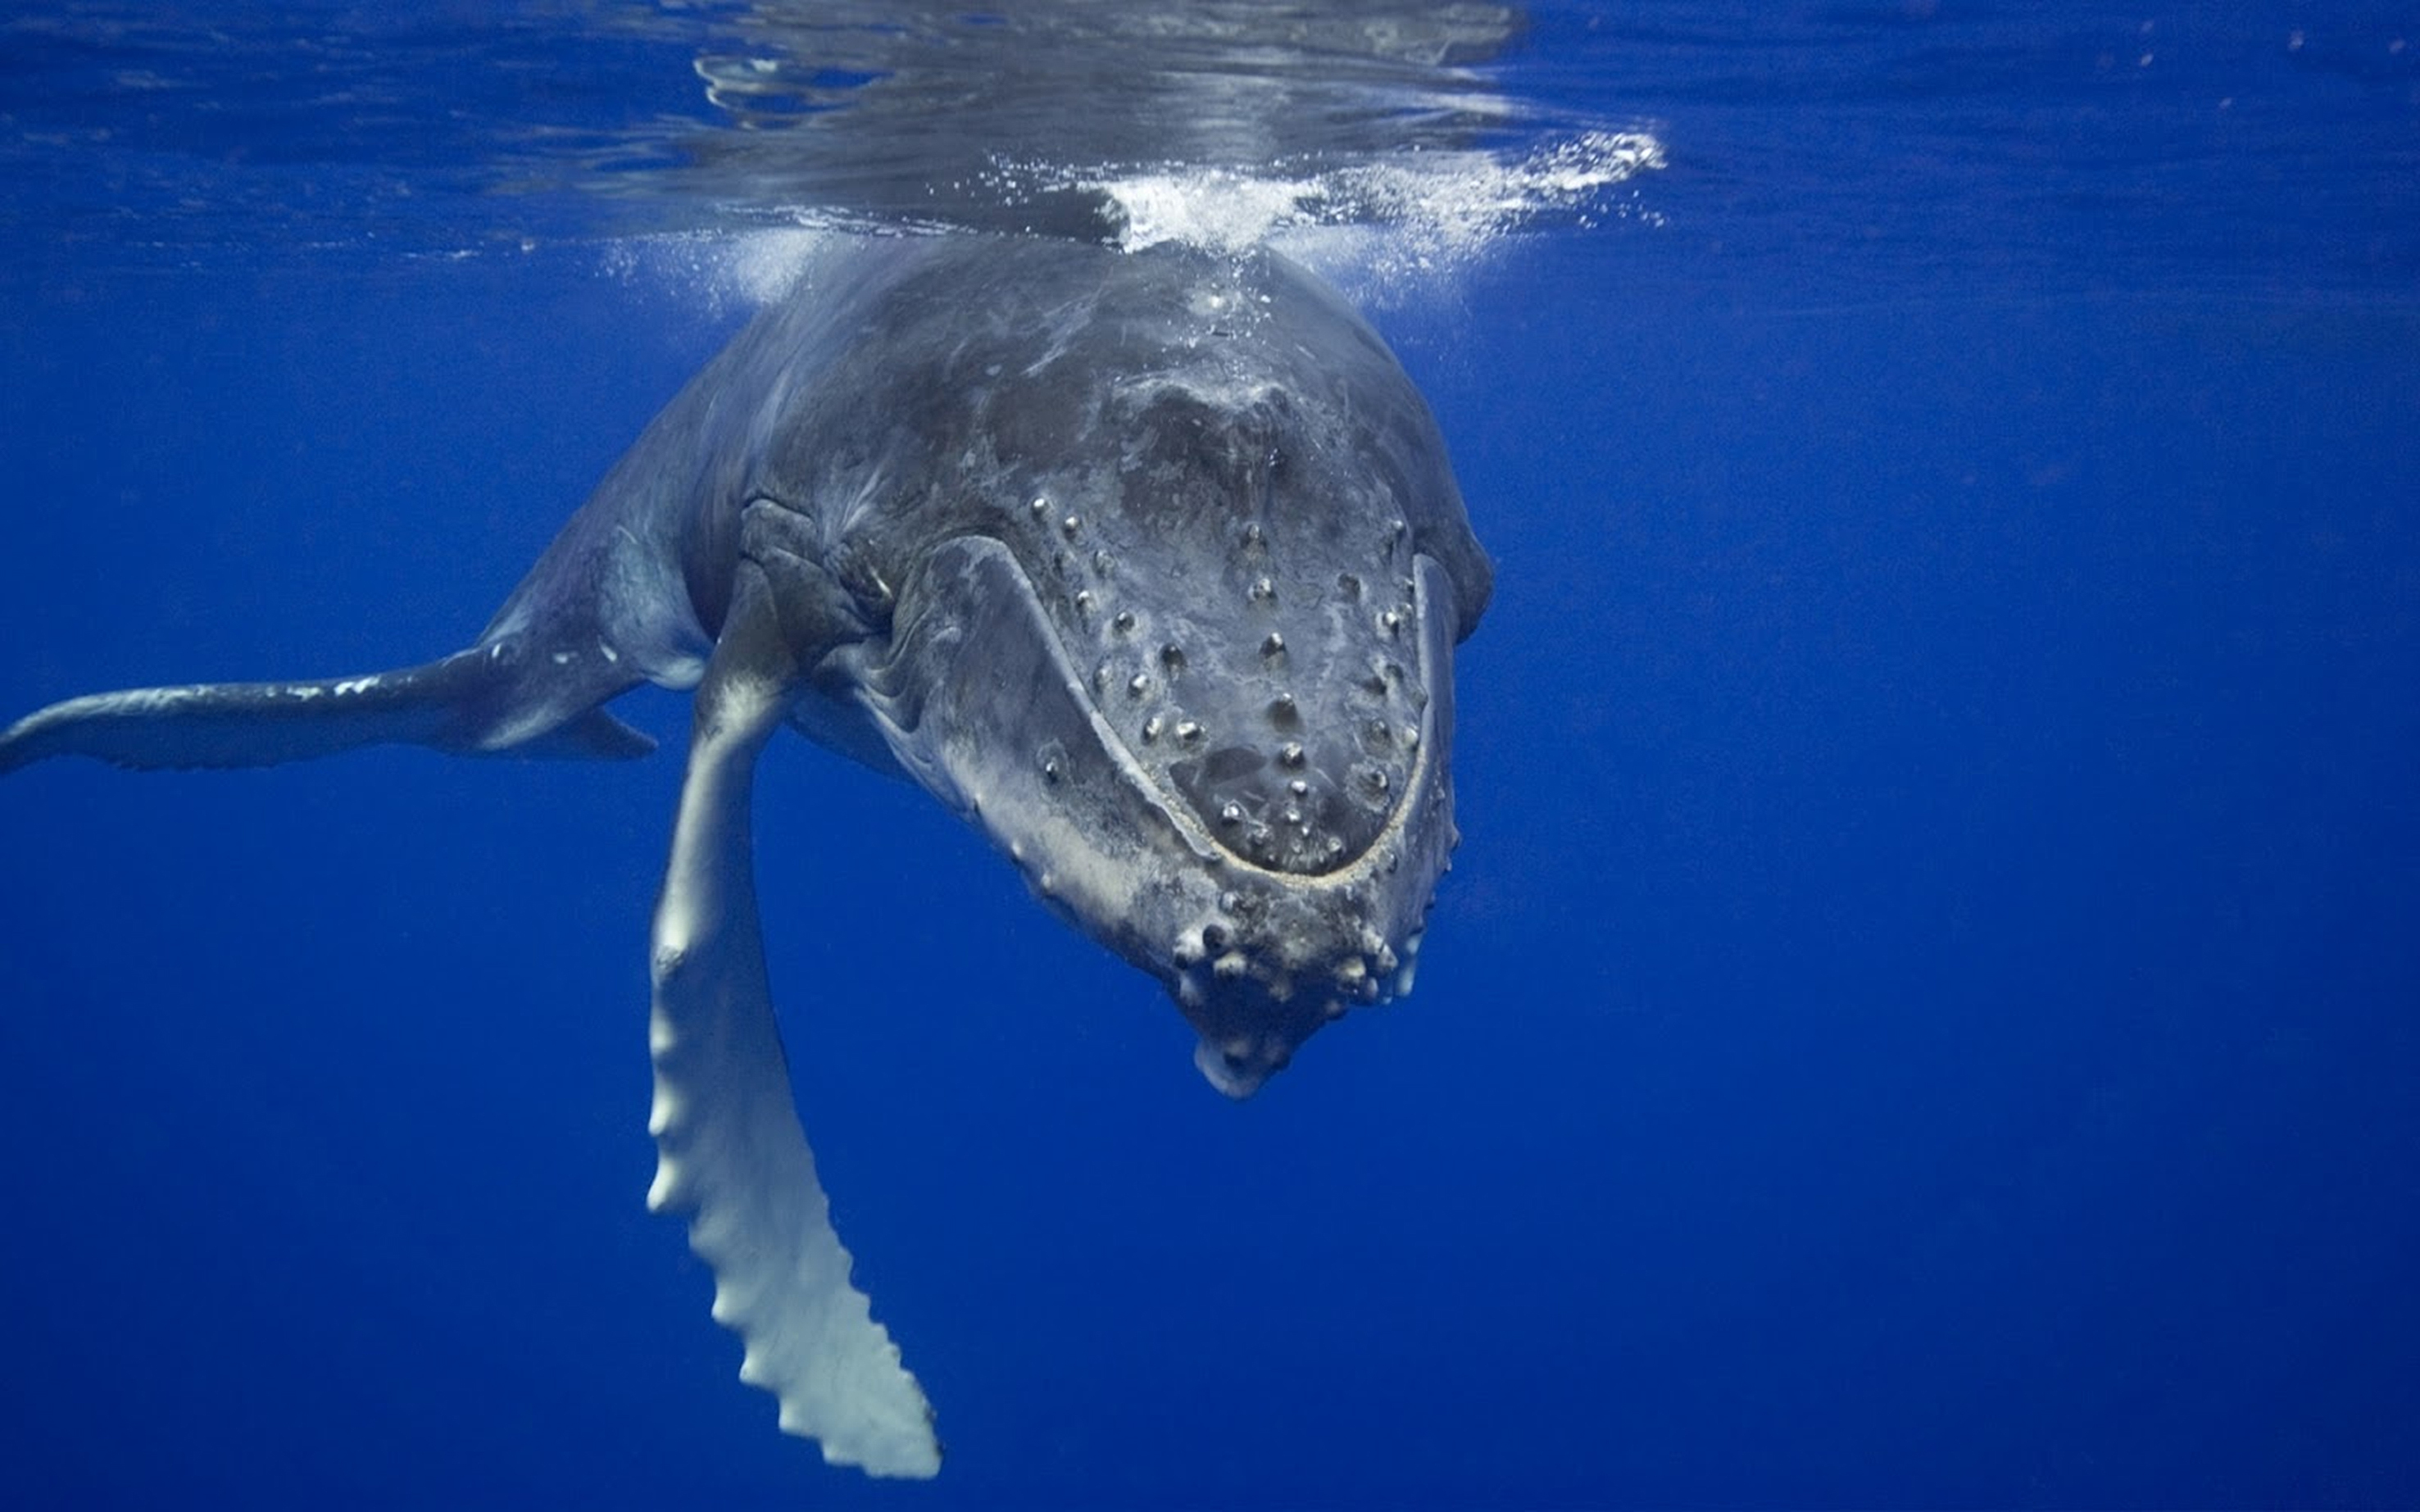 What does a whale and a human have in common?